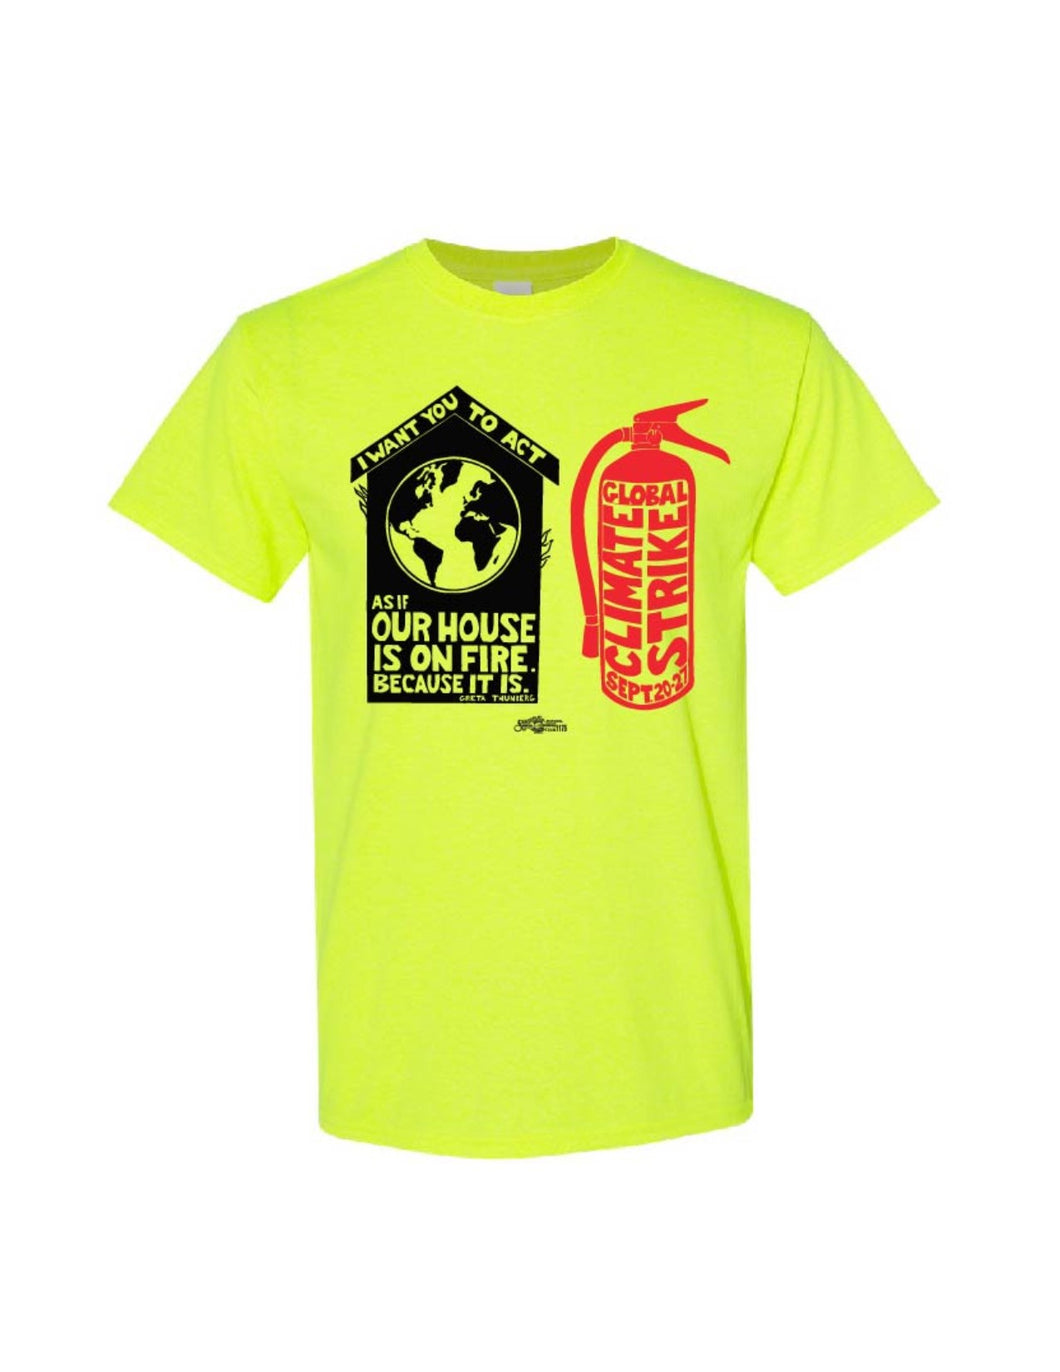 CLIMATE STRIKE - OUR HOUSE IS ON FIRE NEON GREEN